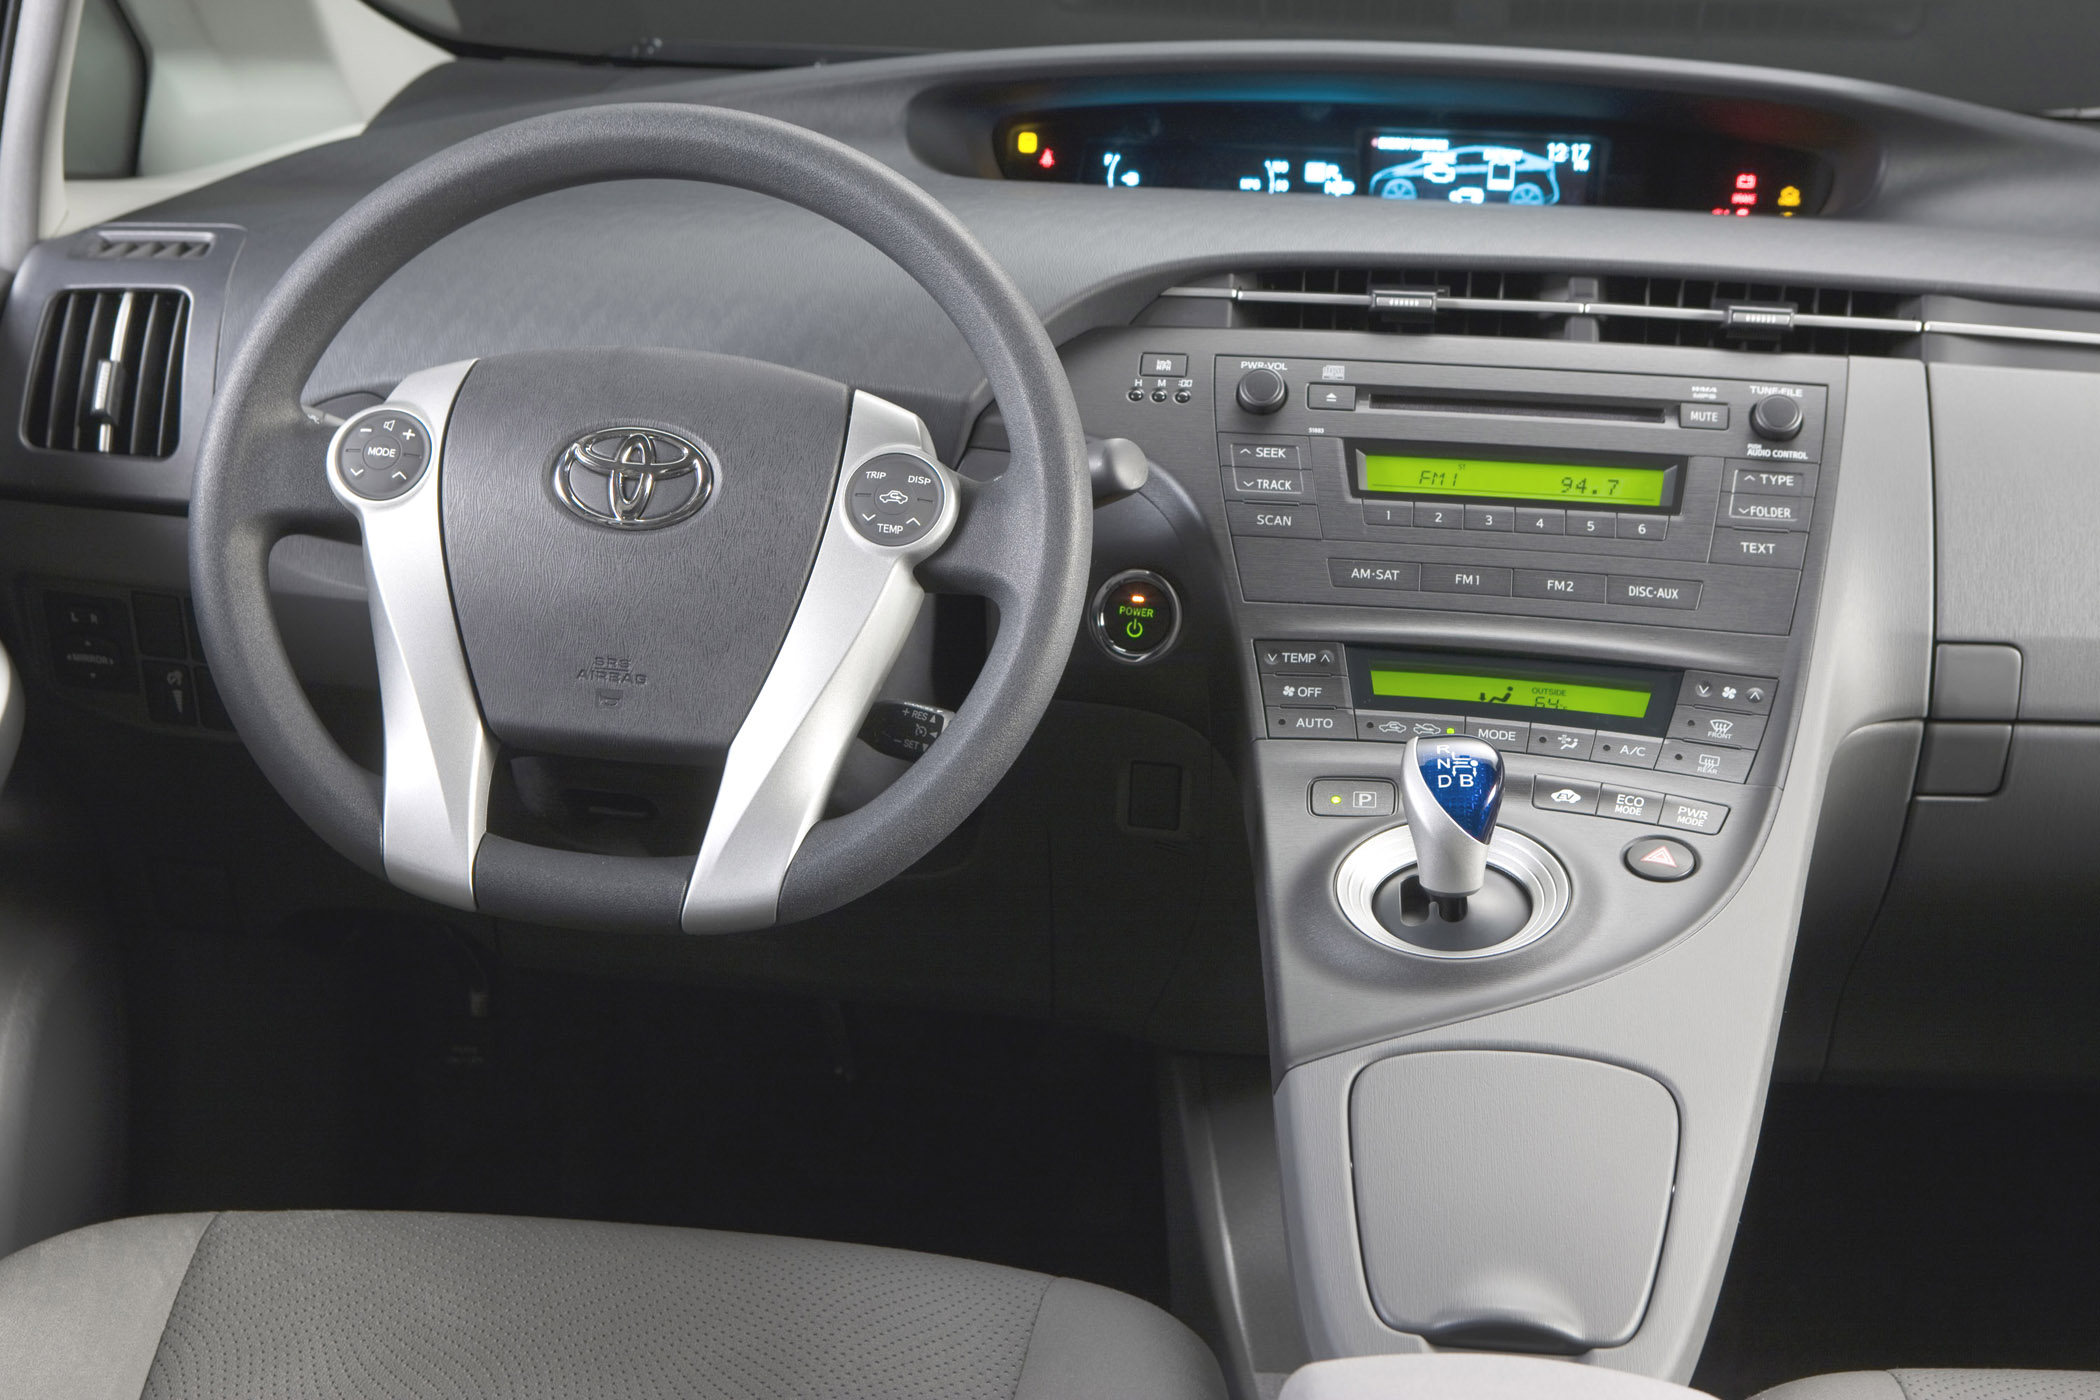 Now Toyota S Ready With An All New Third Generation Prius For 2010 It Improves On Almost Of The Cur Shortcomings Delivers Even Better Fuel